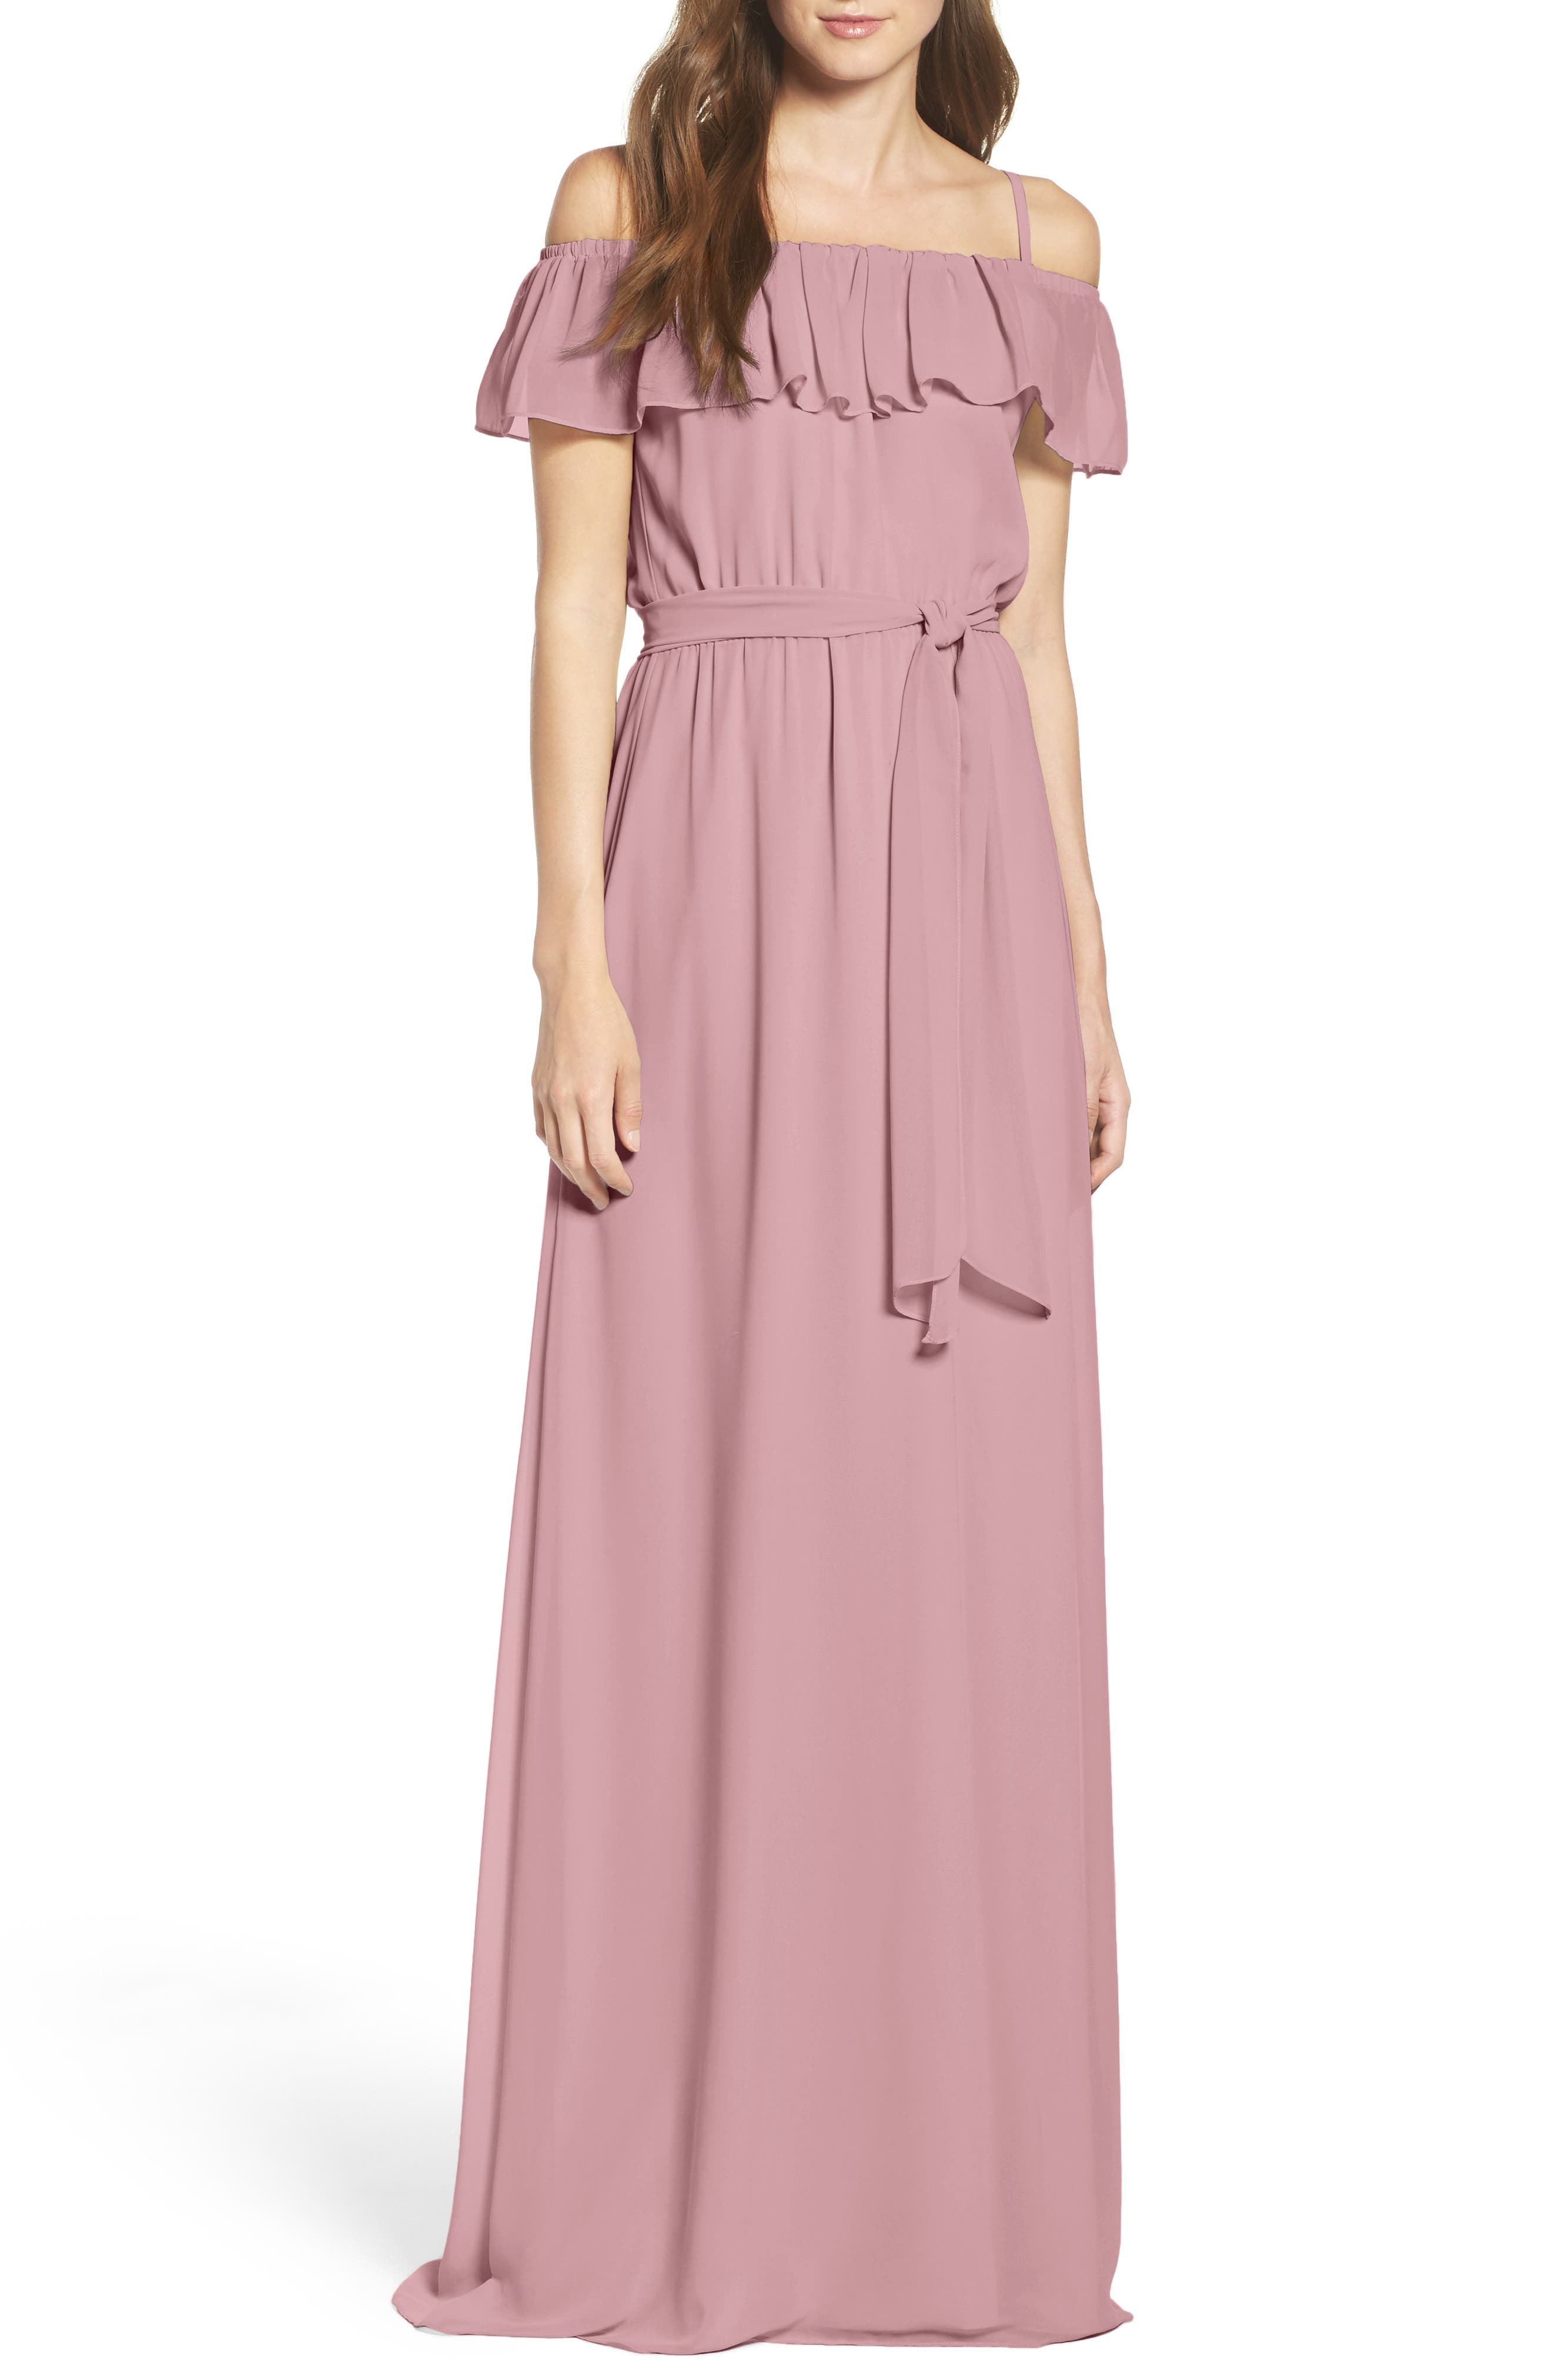 Main Image - Ceremony by Joanna August Ruffle Off the Shoulder Chiffon Gown